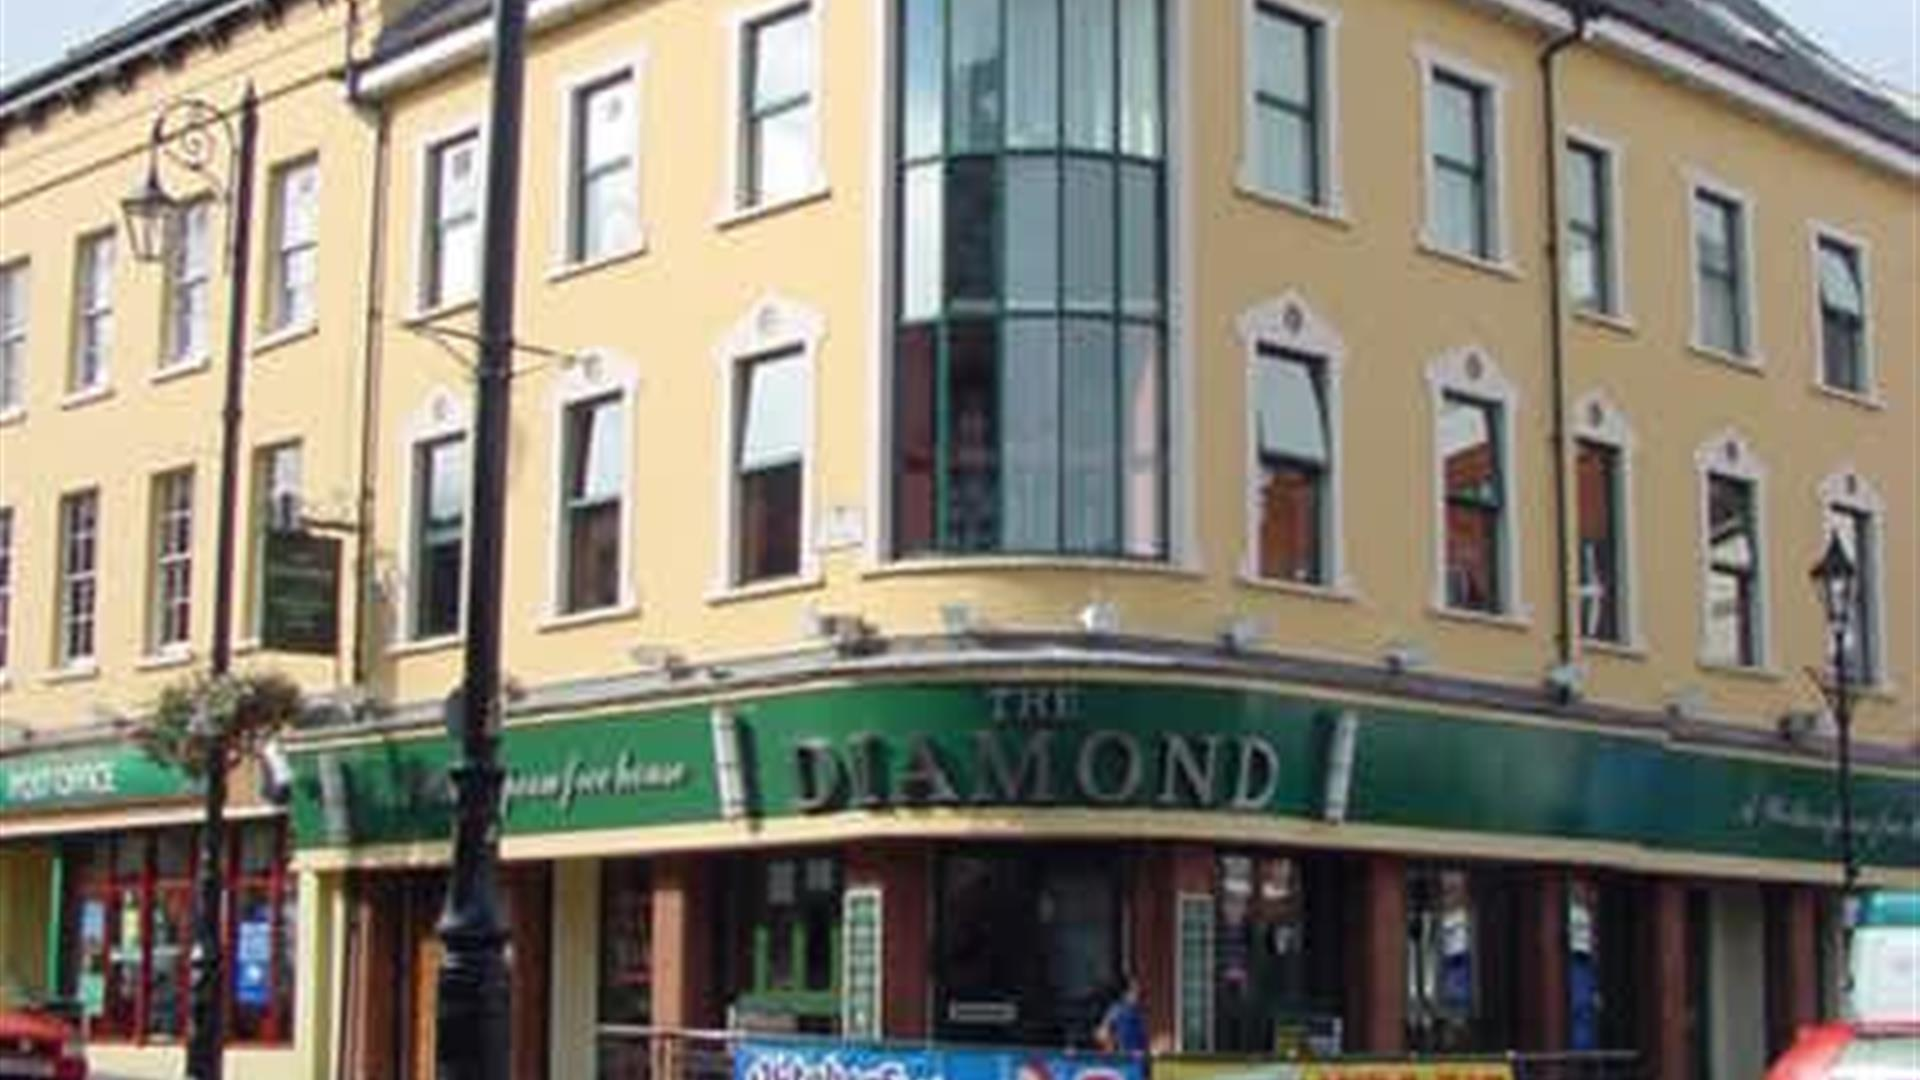 JD Wetherspoons - The Diamond